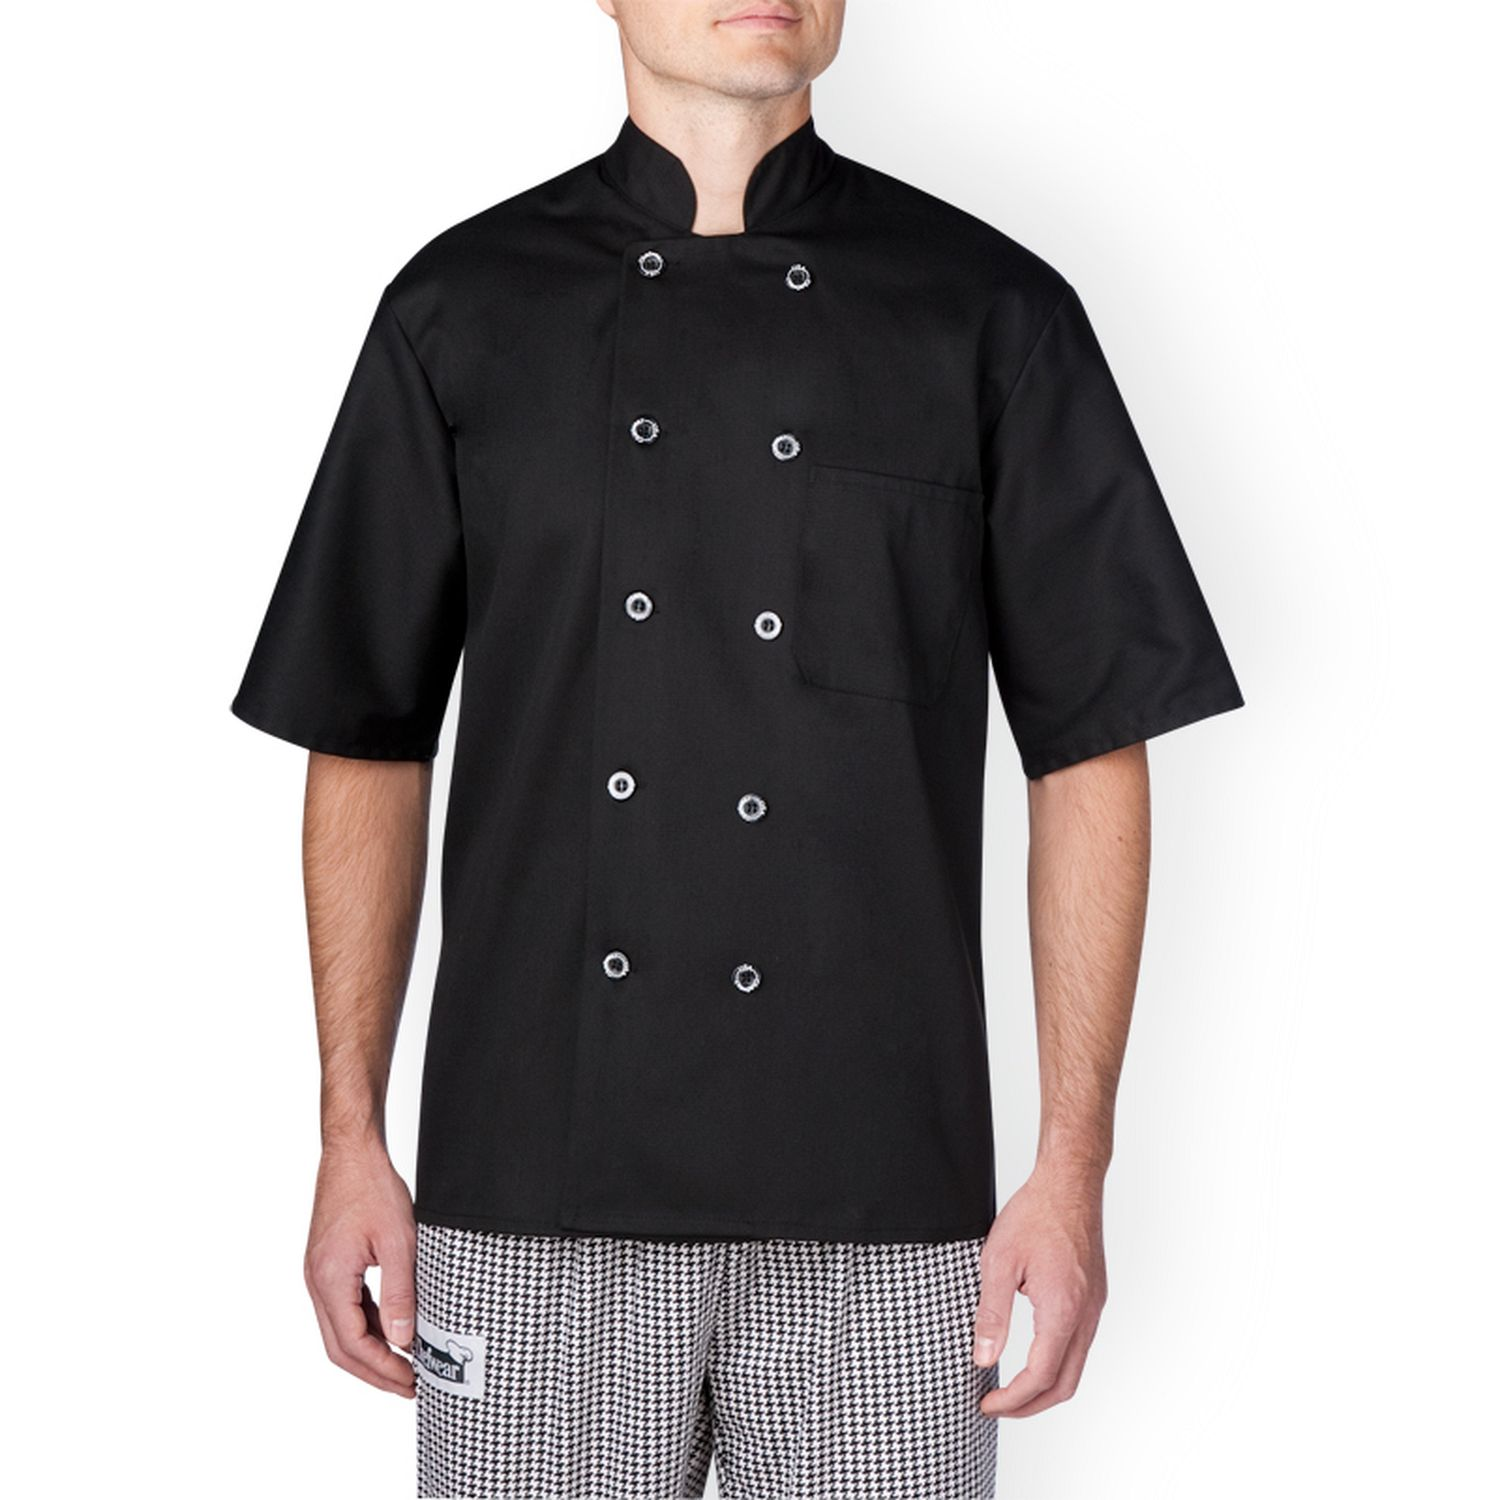 Best Seller - Chefwear (Chef Wear) Short Sleeve Primary Lightweight Chef Jacket (4456)